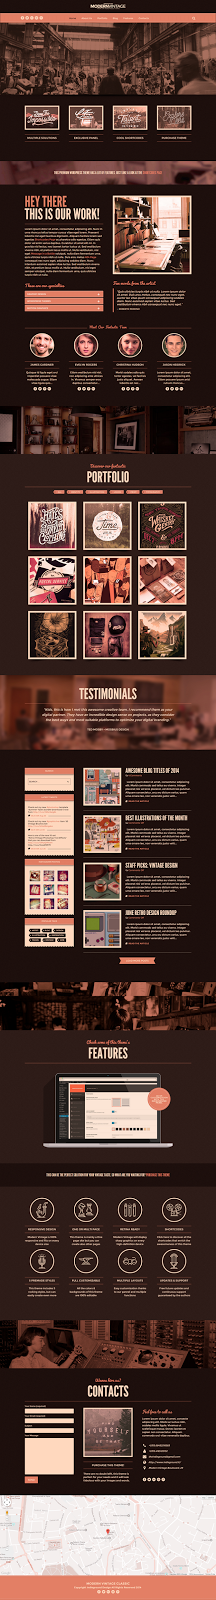 Premium Vintage Style Website Theme